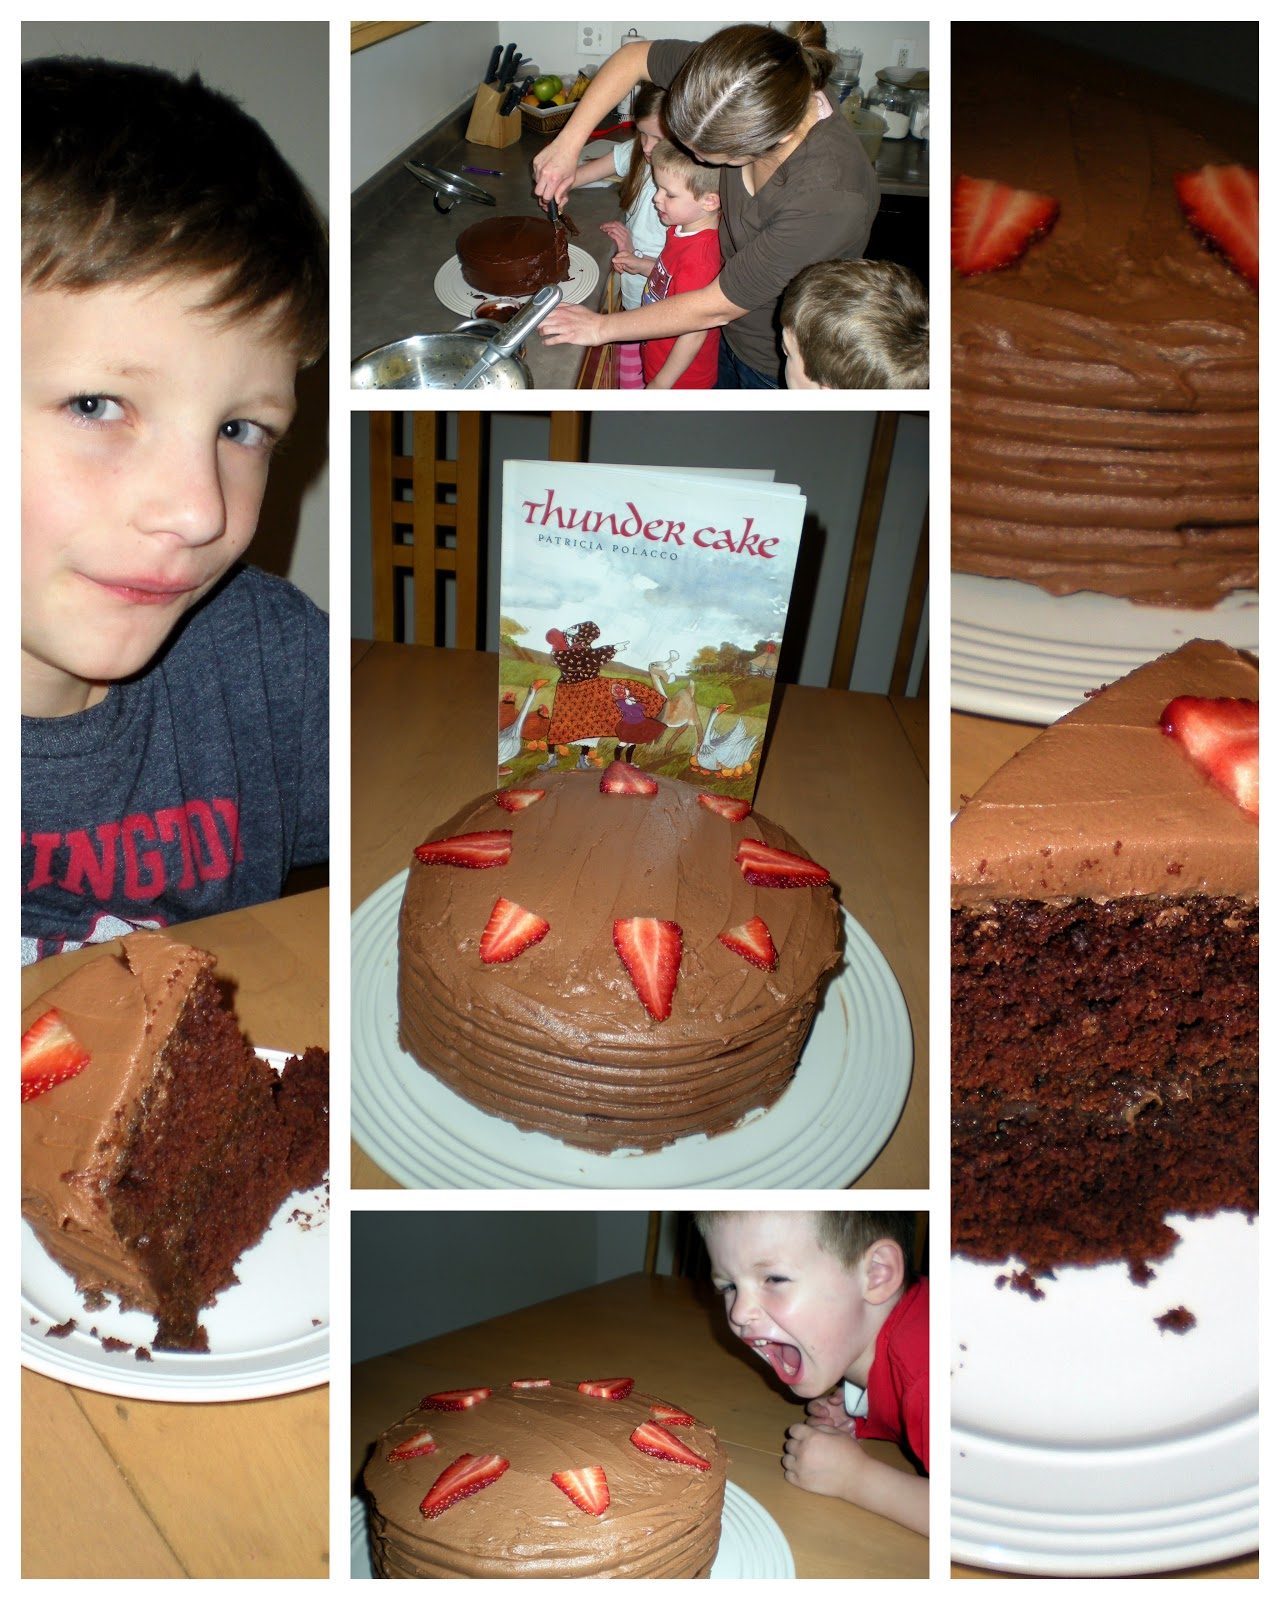 And This Time We Braved The Recipe Which Includes Pureed Tomatoeade A Thunder Cake